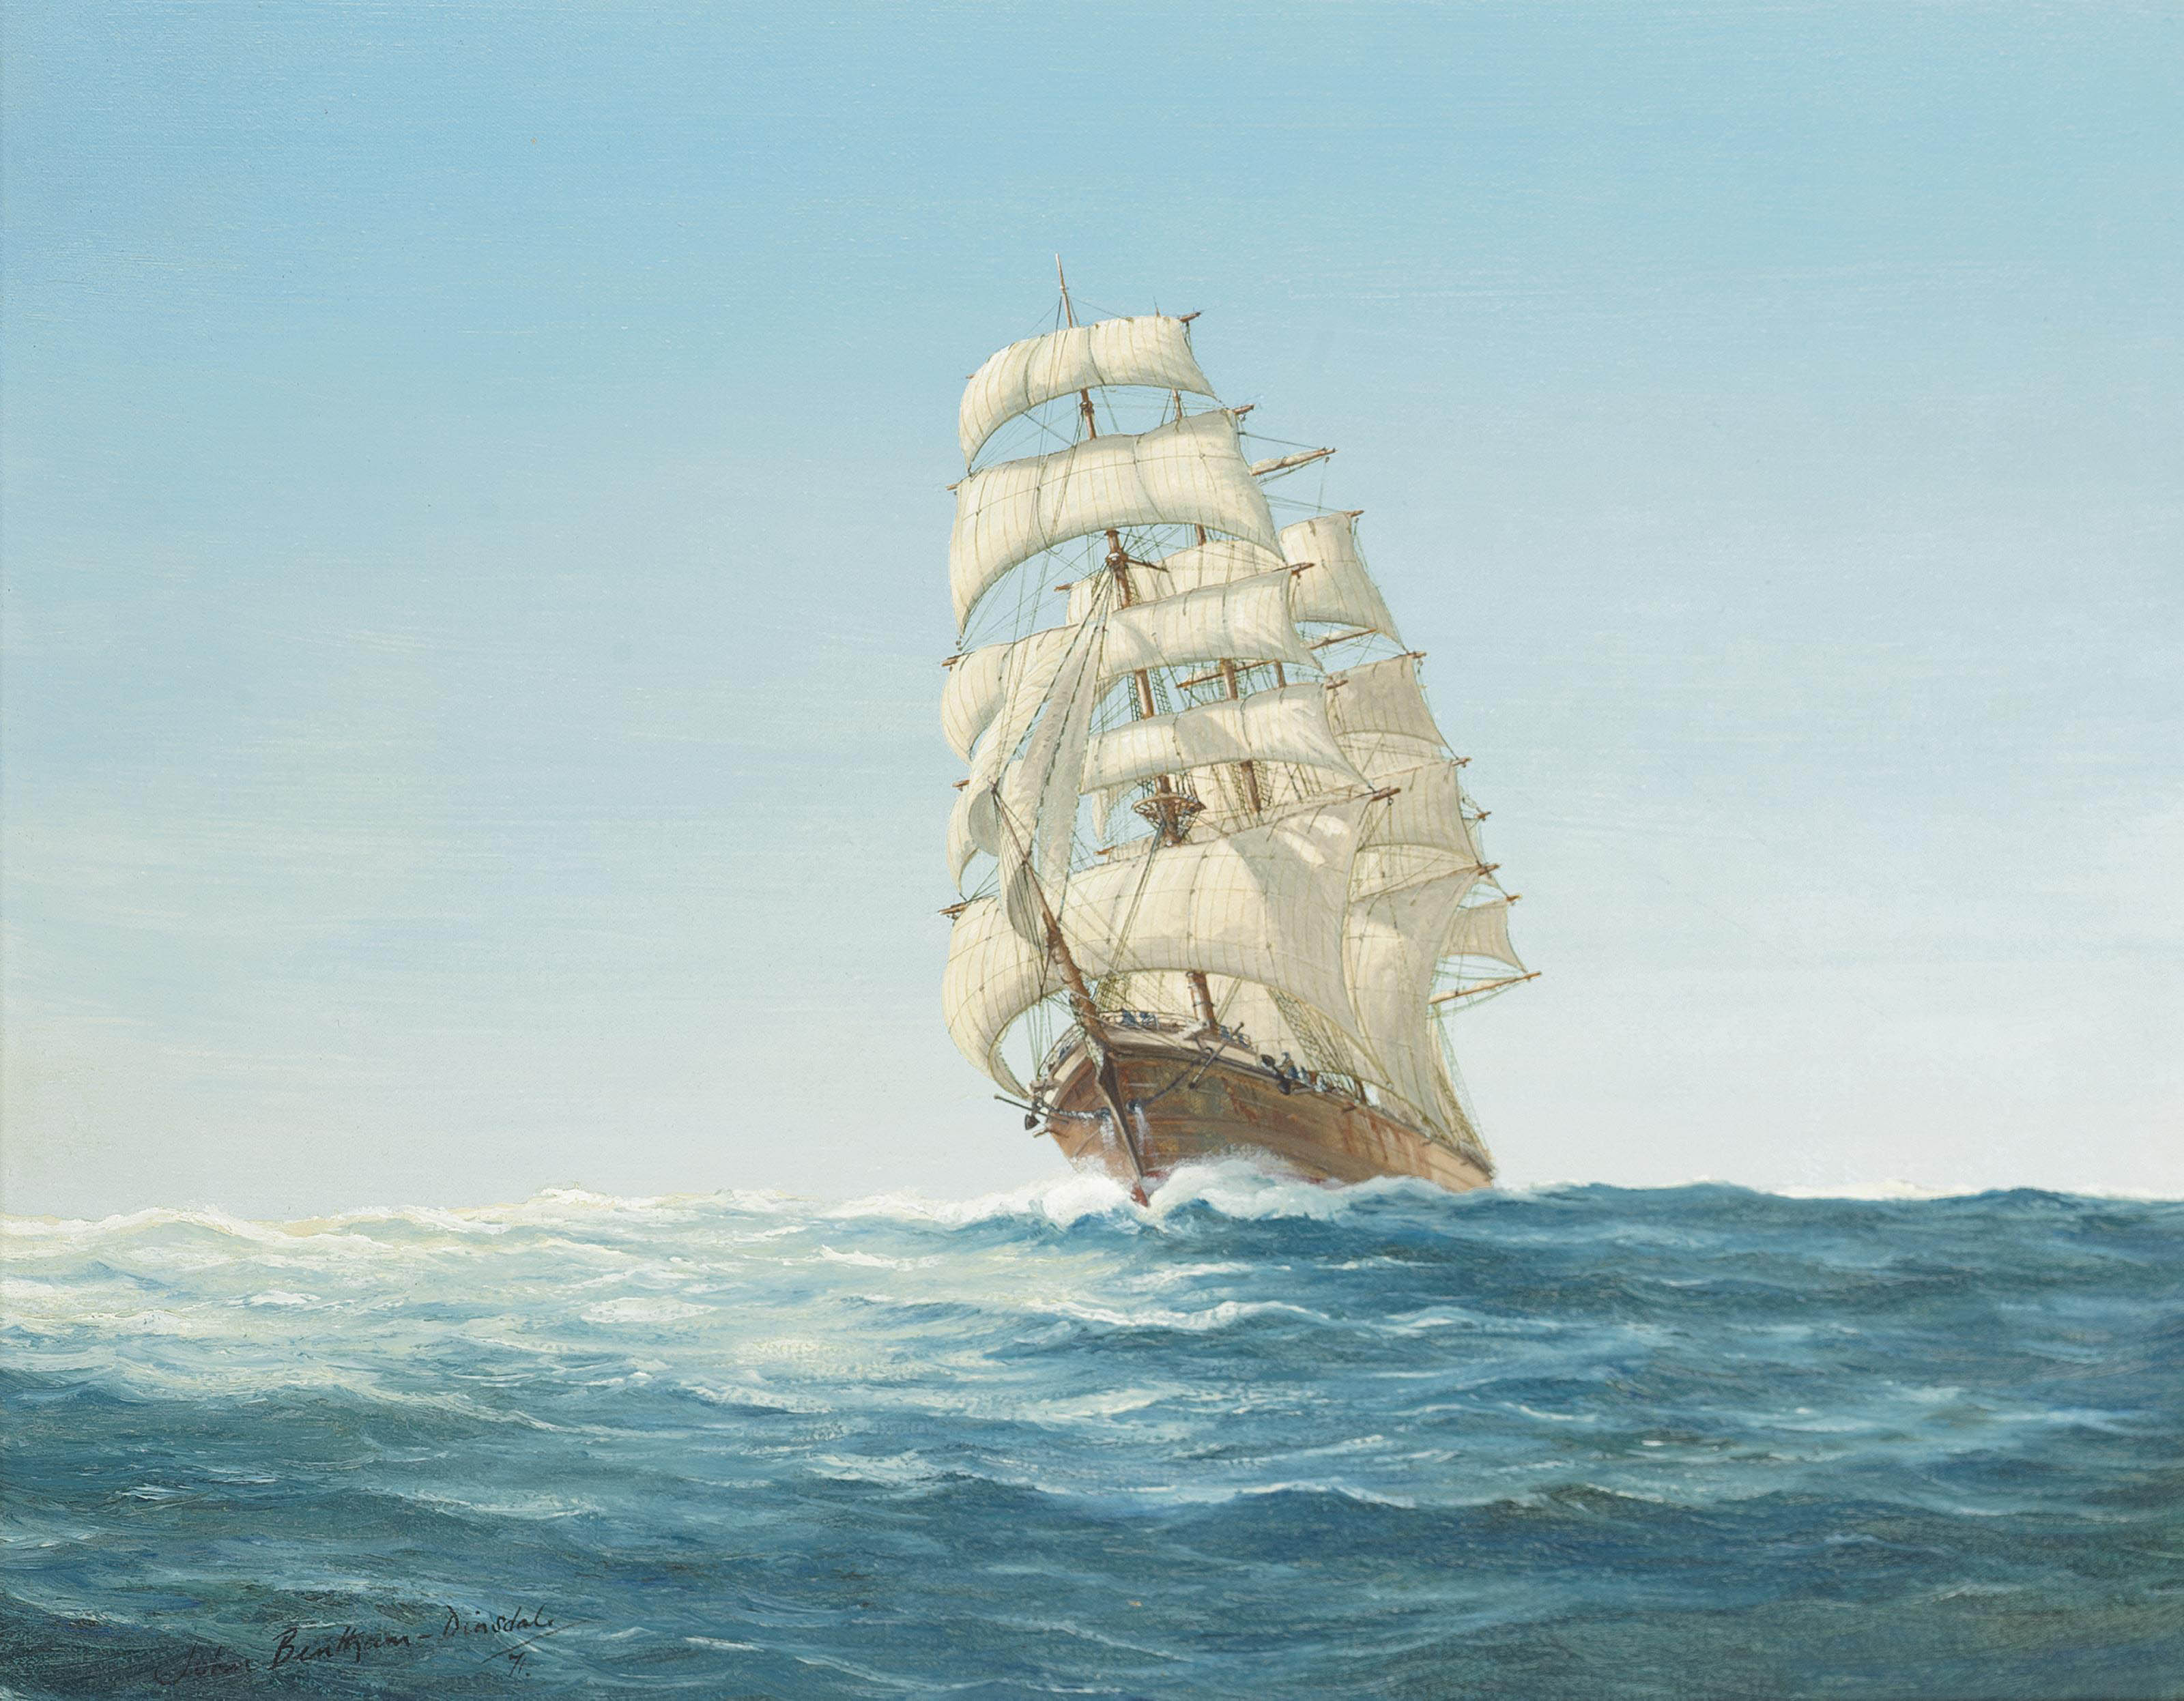 'Morning light'- The barque Carradale